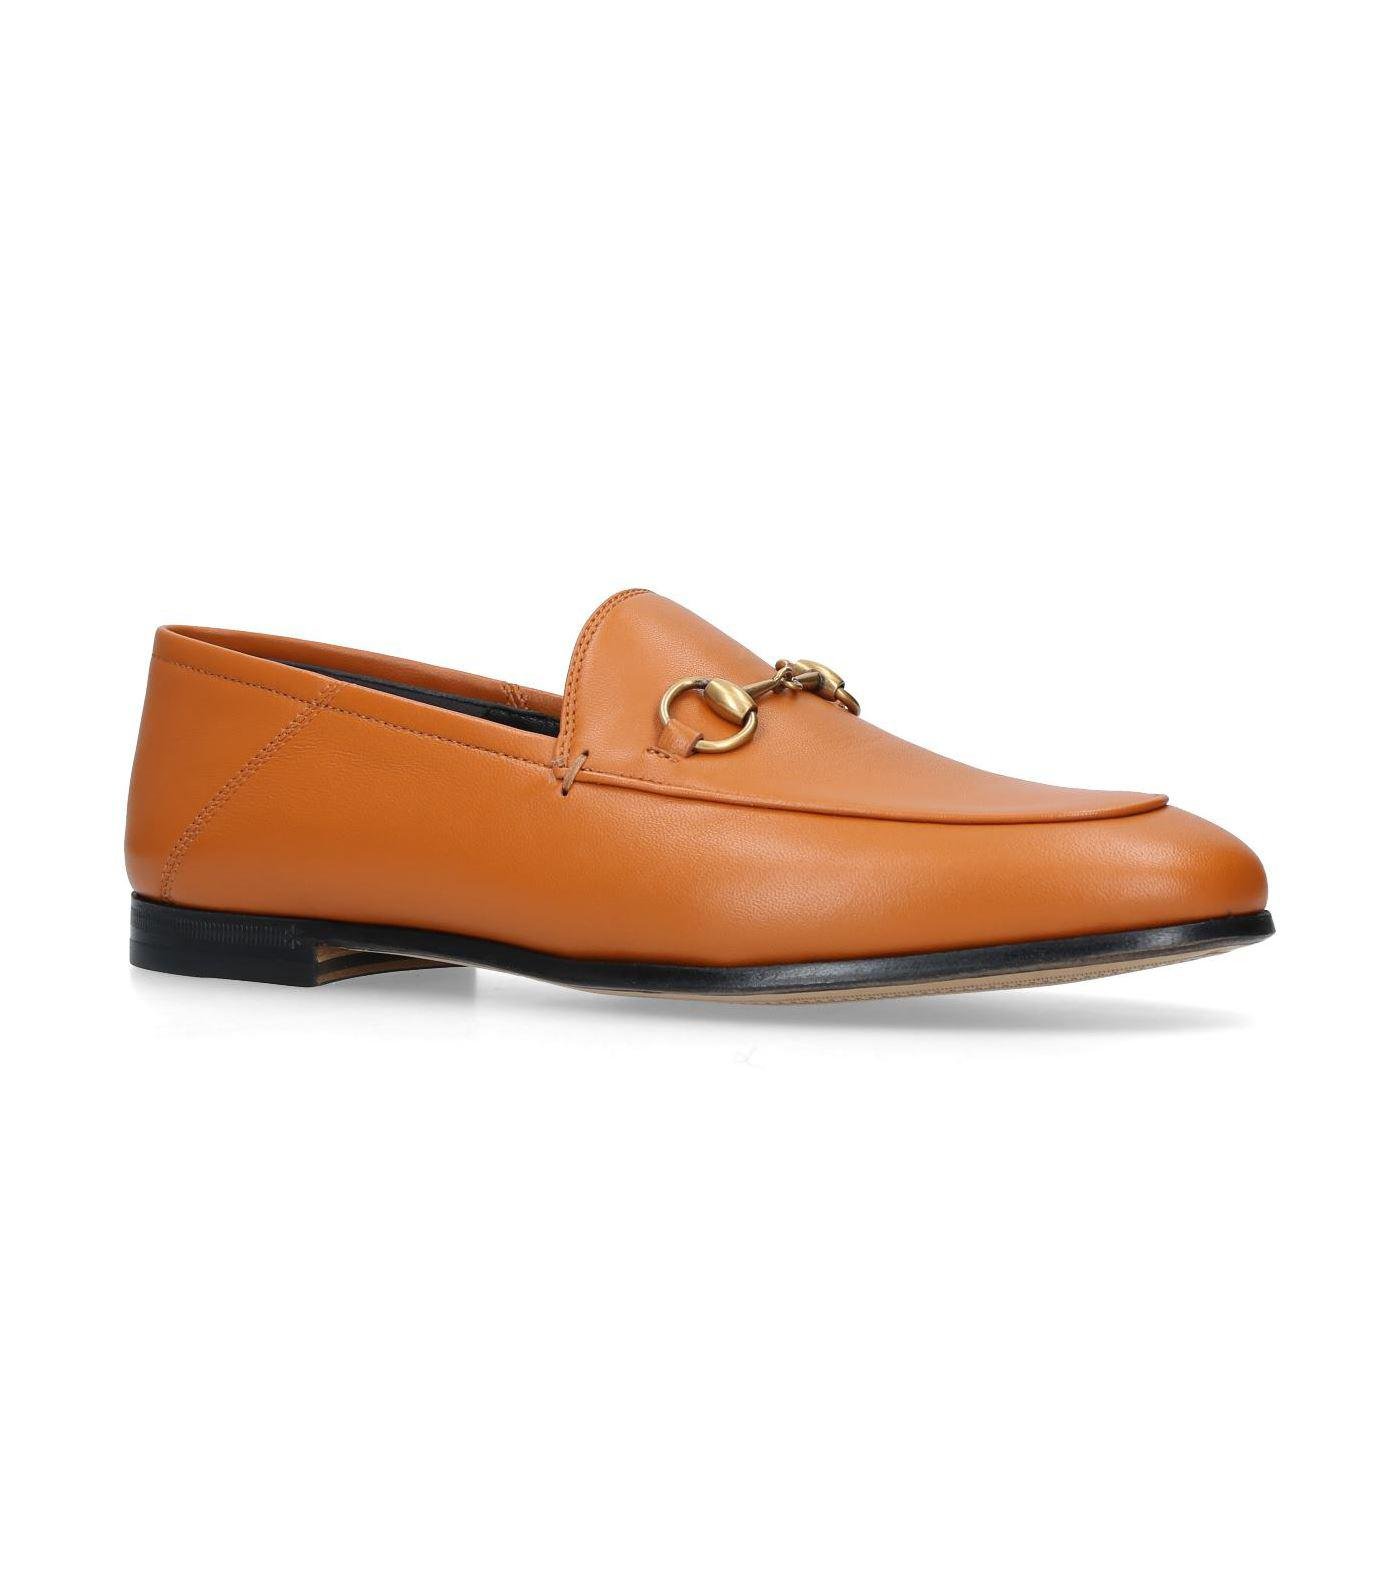 f09478ff158 Gucci Leather Horsebit Loafers in Natural - Lyst